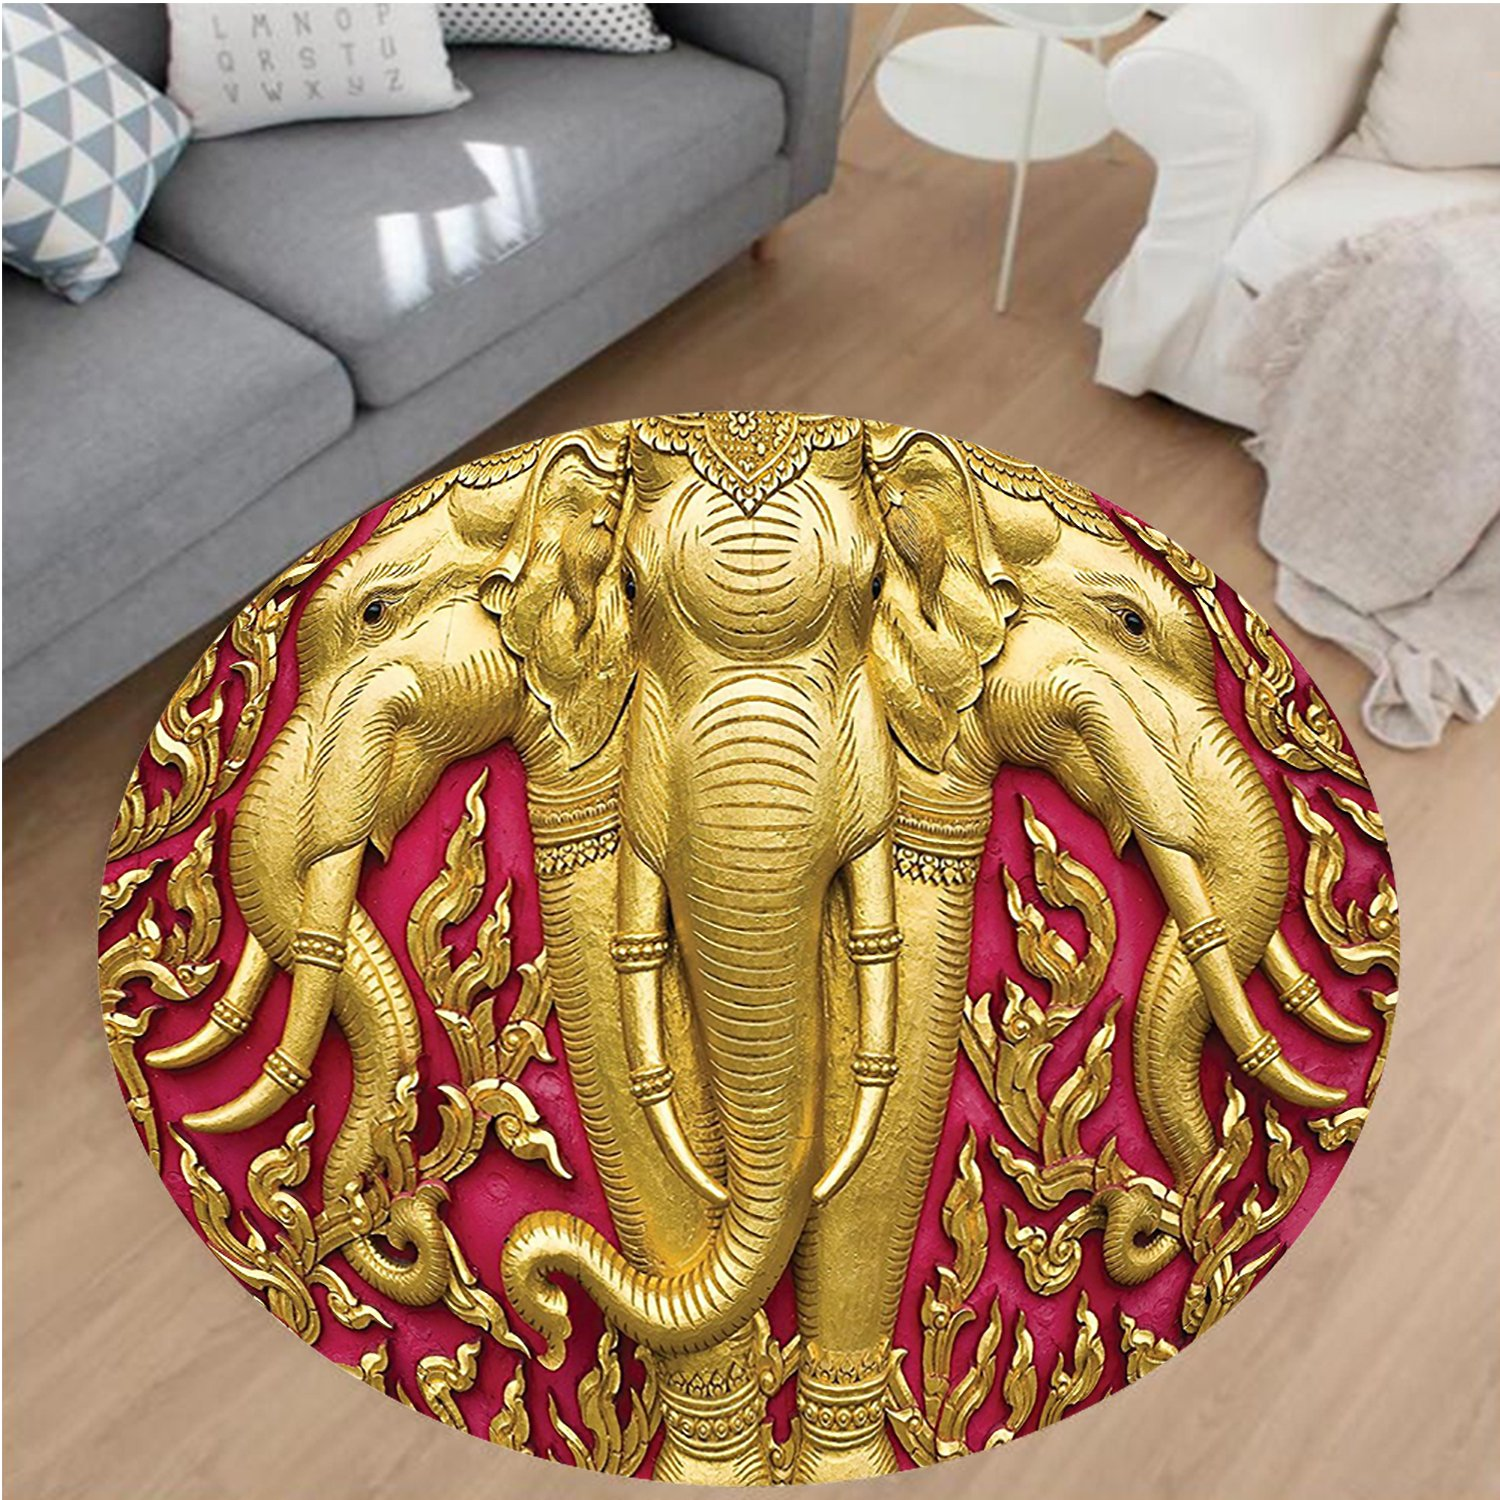 Nalahome Modern Flannel Microfiber Non-Slip Machine Washable Round Area Rug-nt Carved Gold Paint on Door Thai Temple Spirituality Statue Classic Image Magenta Golden area rugs Home Decor-Round 79'' by Nalahome